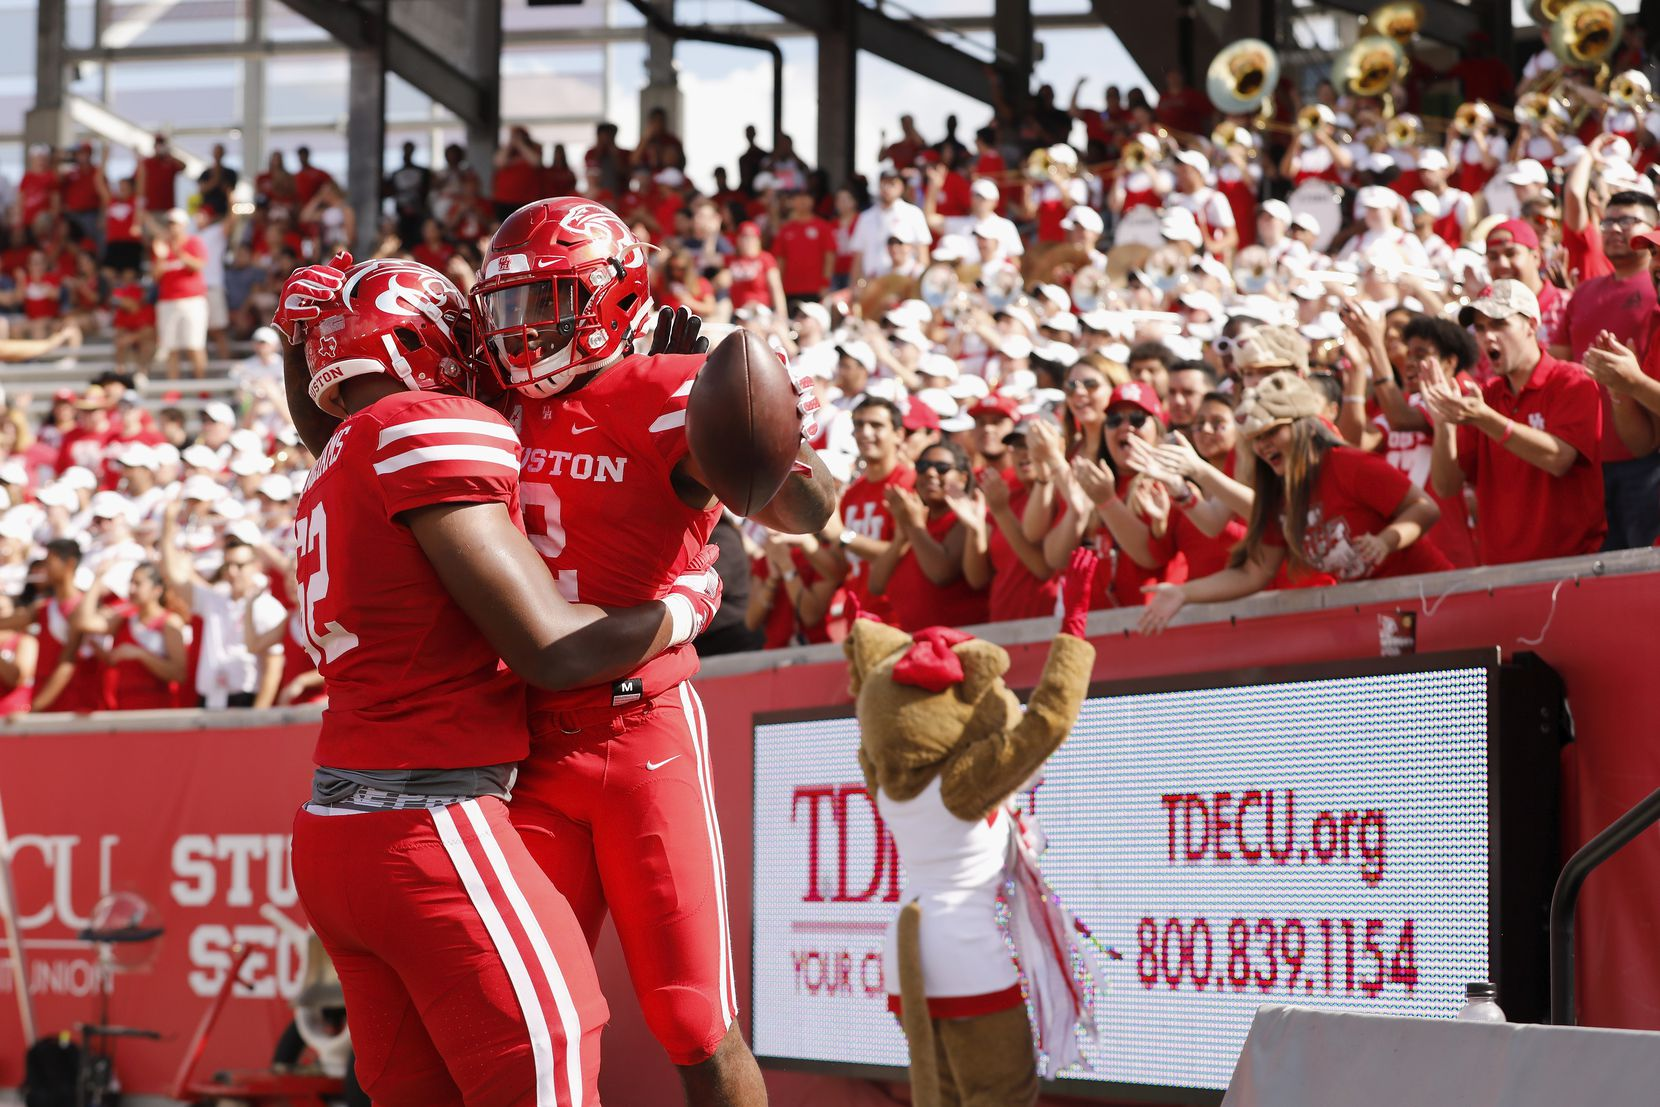 HOUSTON, TX - NOV. 04, 2017:  Jarrid Williams #62 of the Houston Cougars celebrates with Duke Catalon #2 after touchdown in the first half at TDECU Stadium on November 4, 2017 in Houston, Texas.  (Photo by Tim Warner/Getty Images)